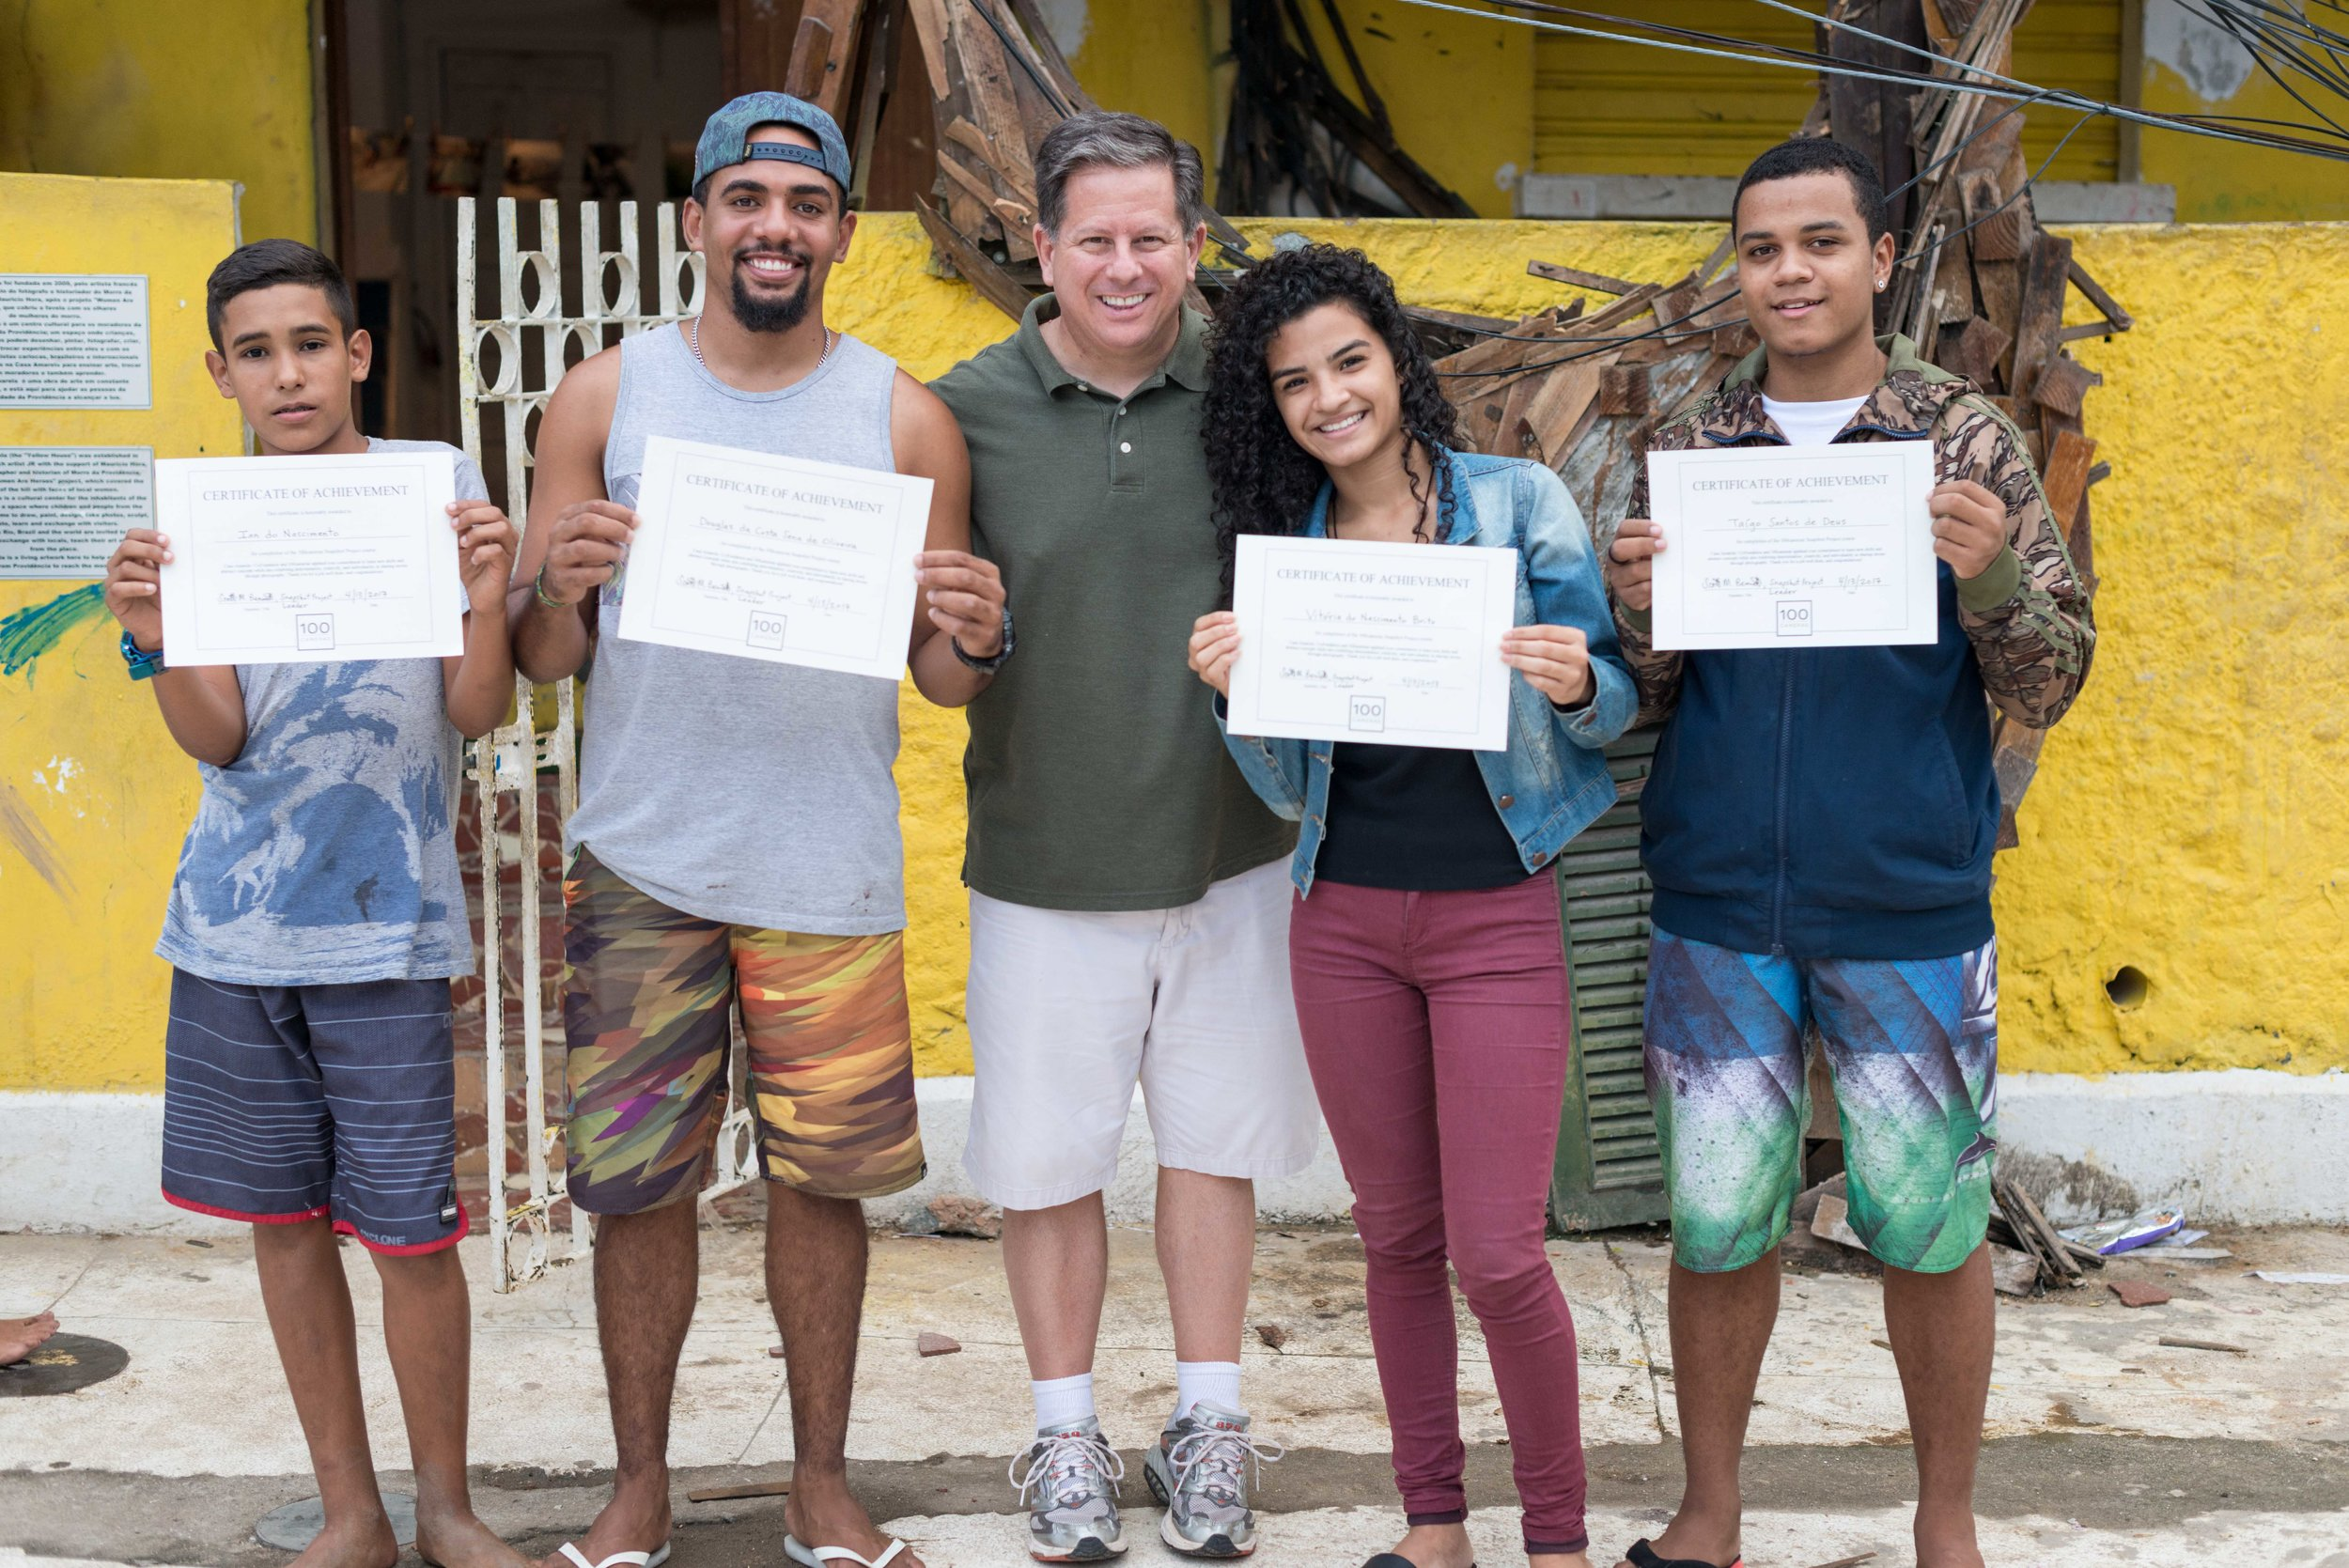 Scott Bennett pictured here with students proud to show their graduation certificates.